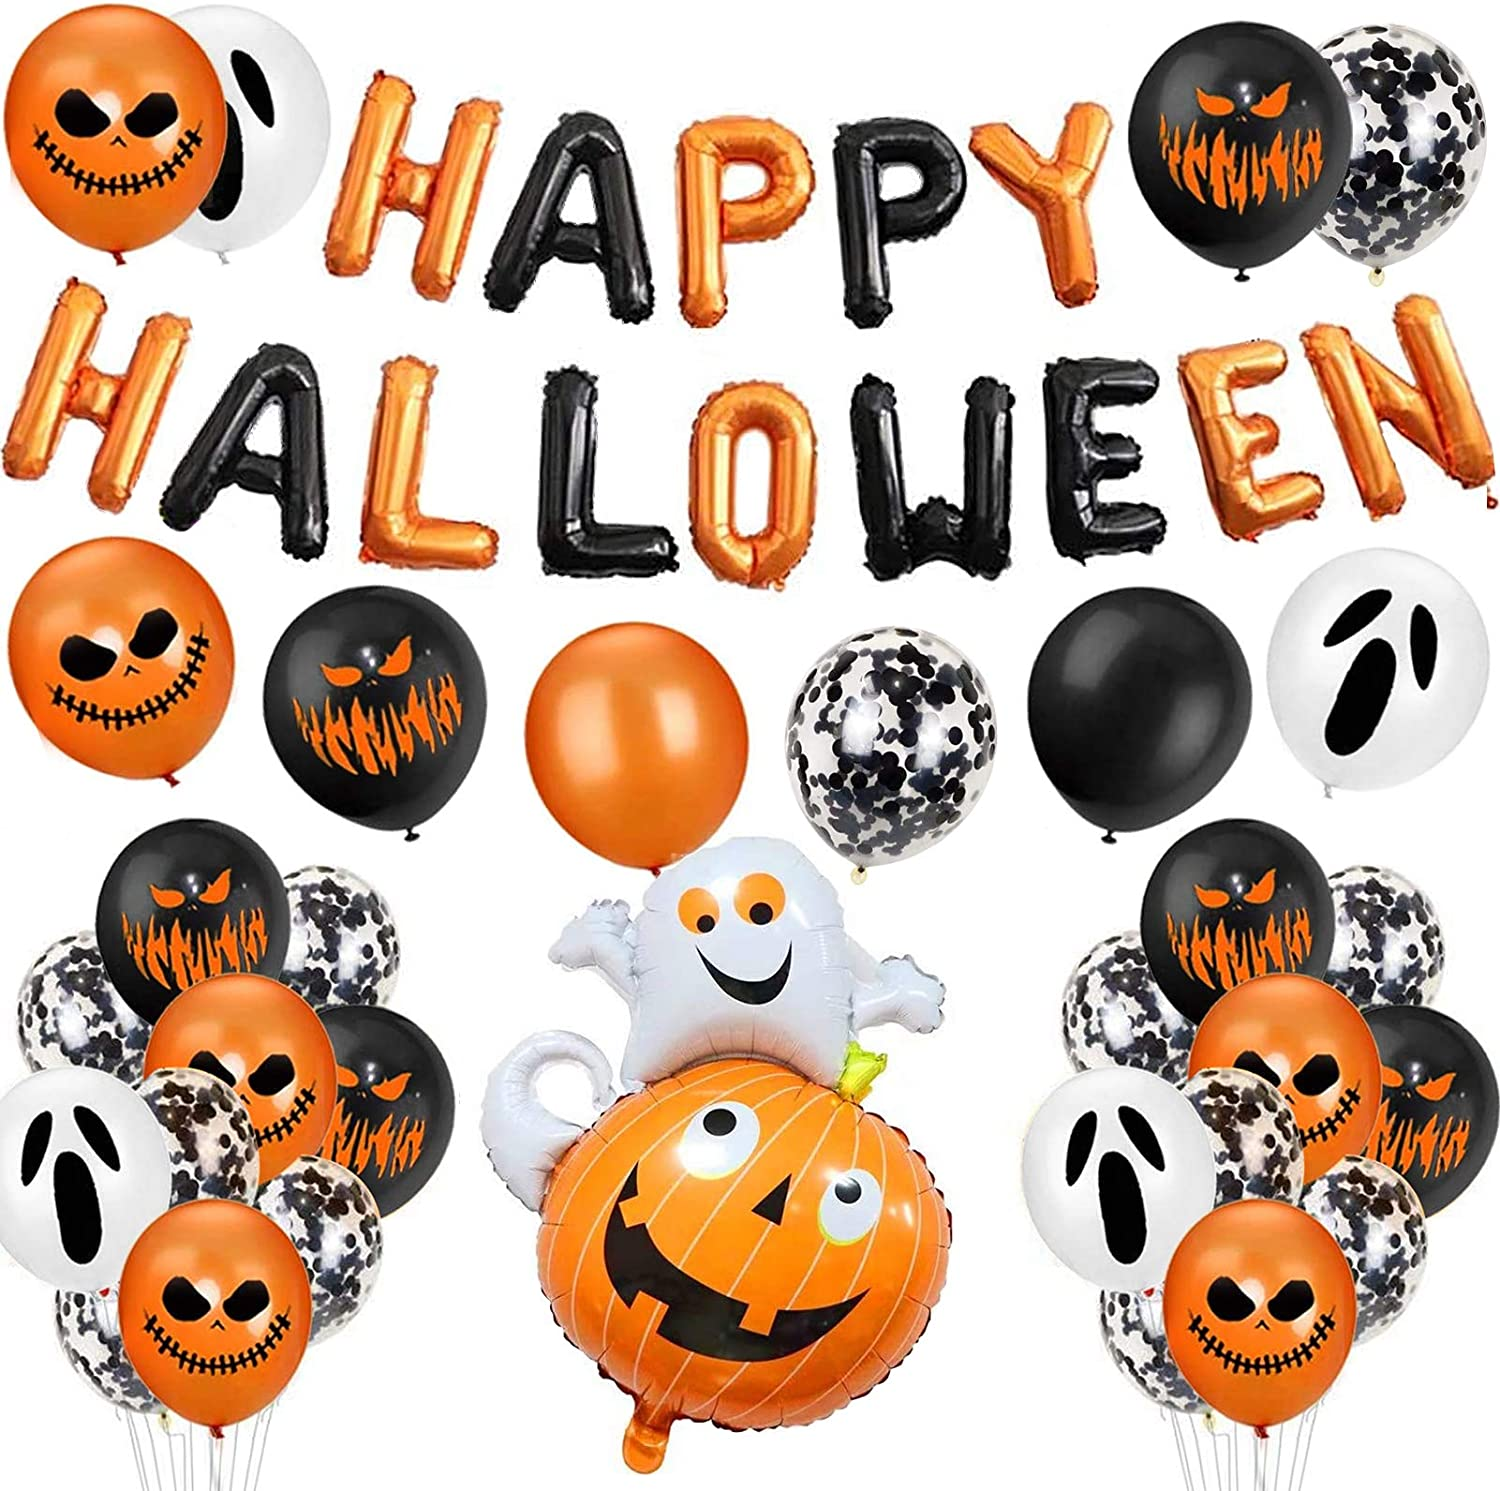 Fete d/'Halloween 2 Sunshine smile Halloween Ballons,Ensemble D/écoration Halloween,Halloween D/écorations Ballons,Ballons Noir Orange